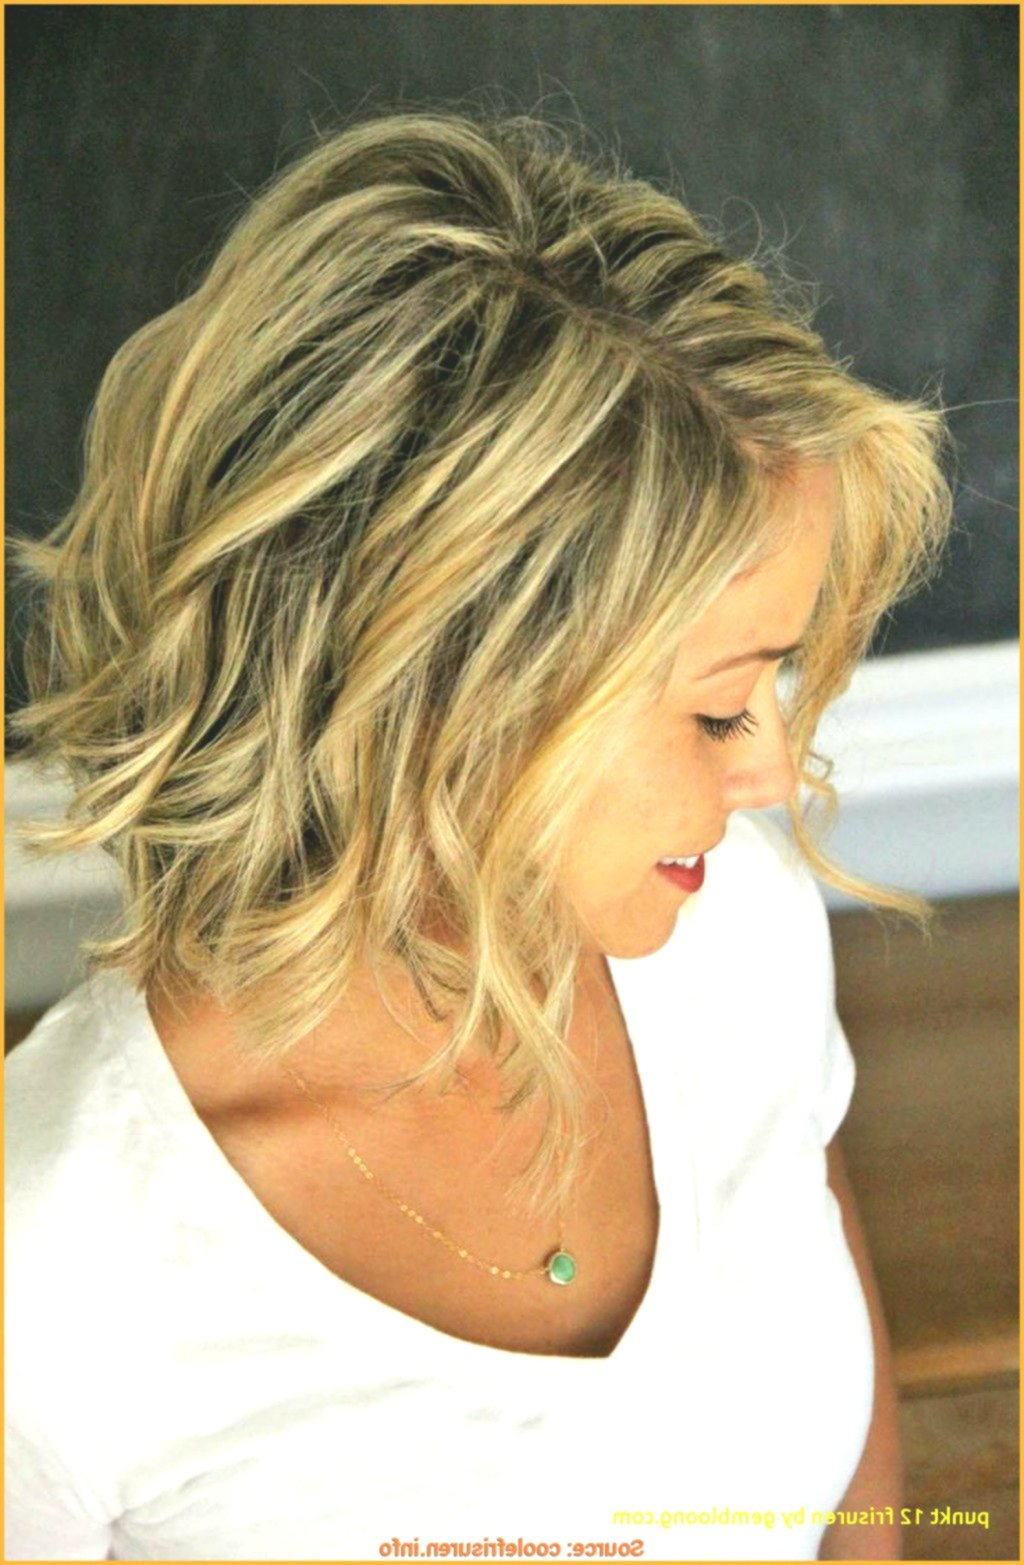 lovely hairstyles with braid image-Inspirational Hairstyles With braid models